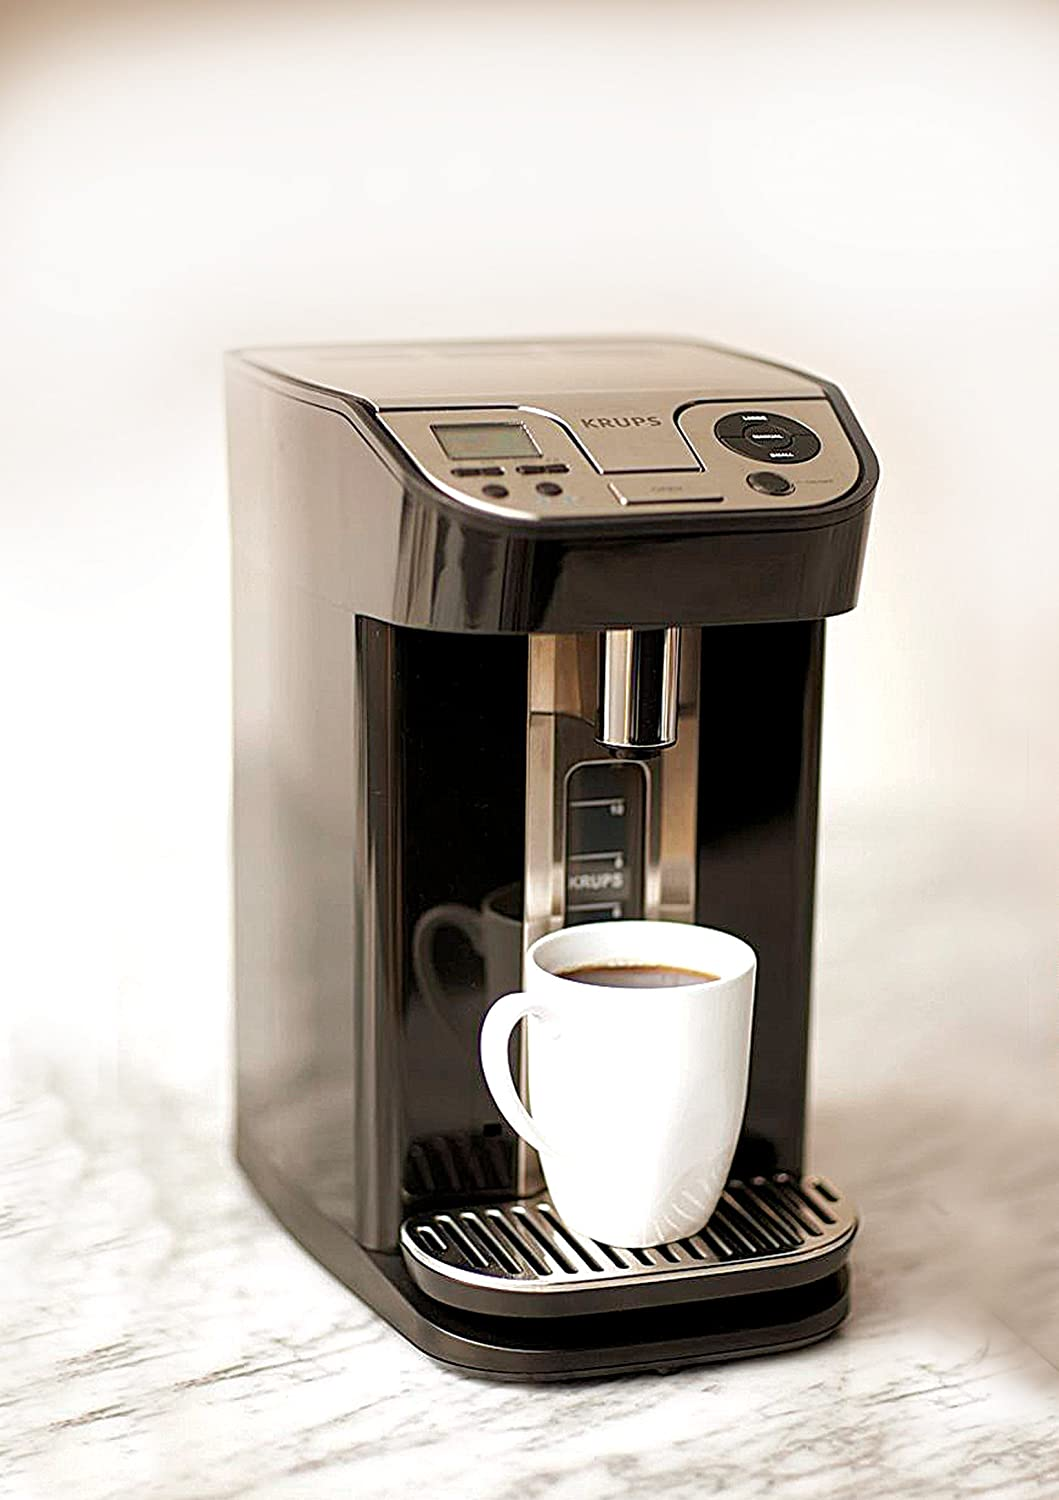 What Is The Best Grind and Brew Coffee Maker? Top Rated Coffee Makers